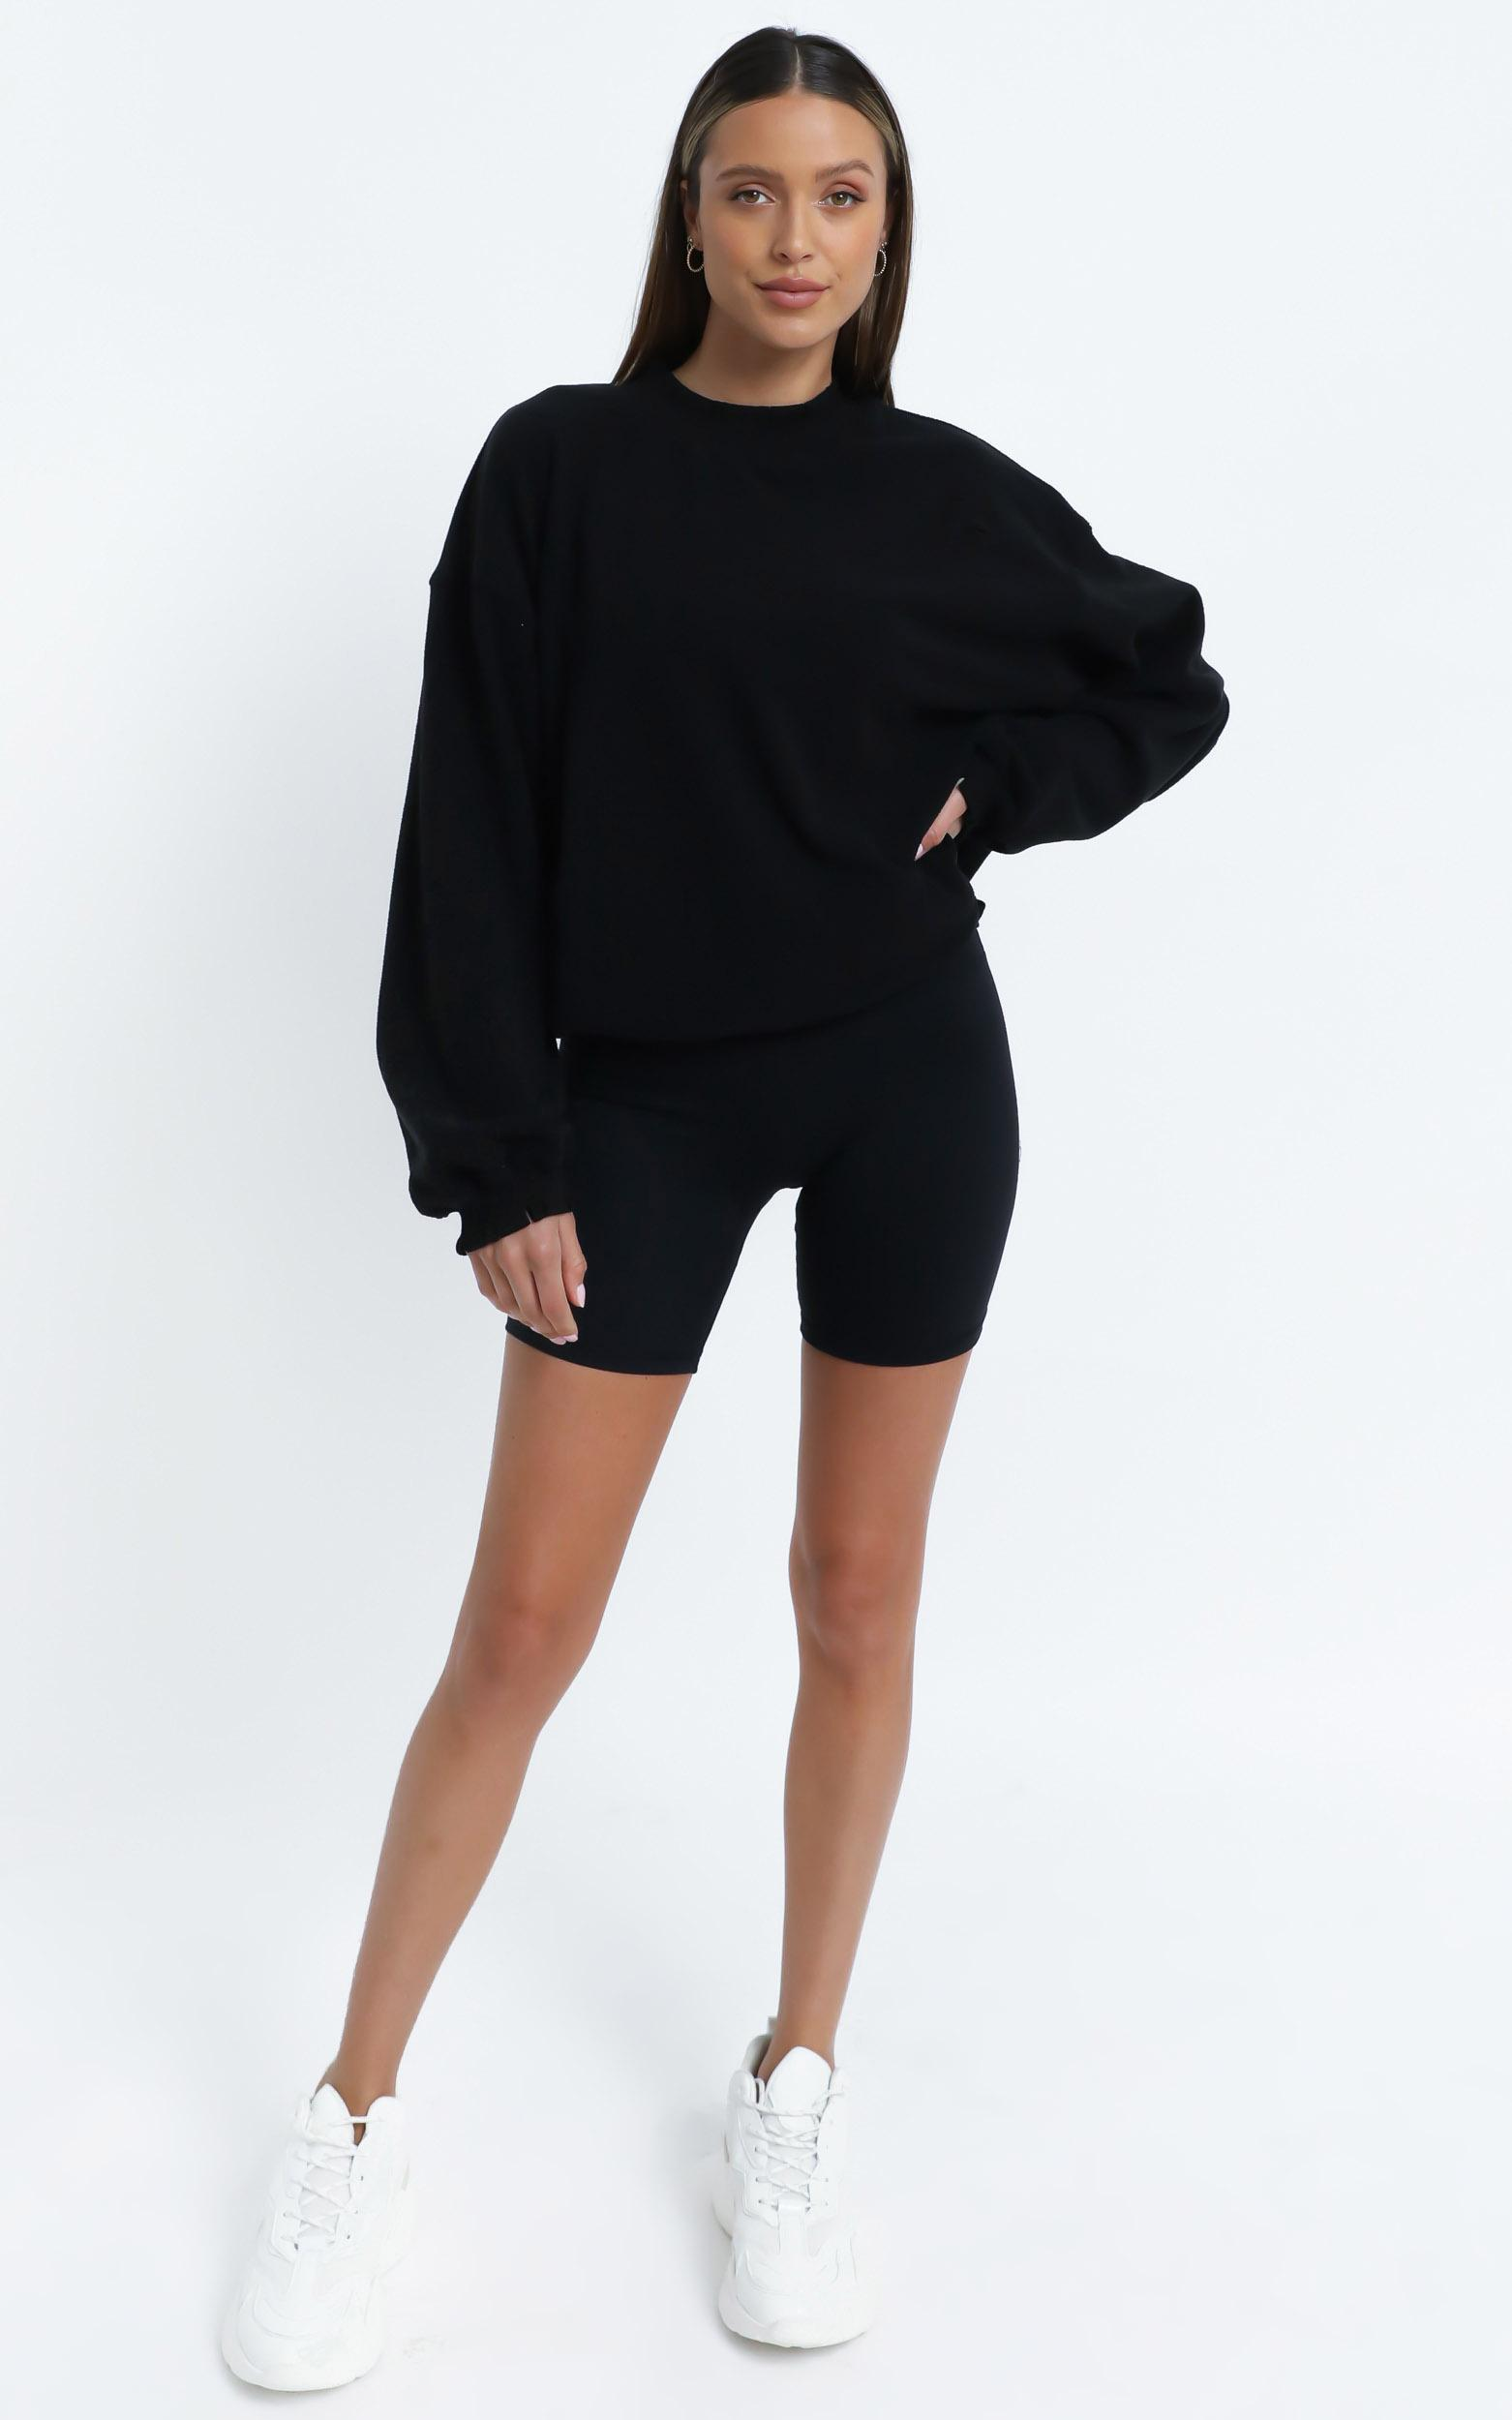 Cheska Top in Black - 12 (L), Black, hi-res image number null